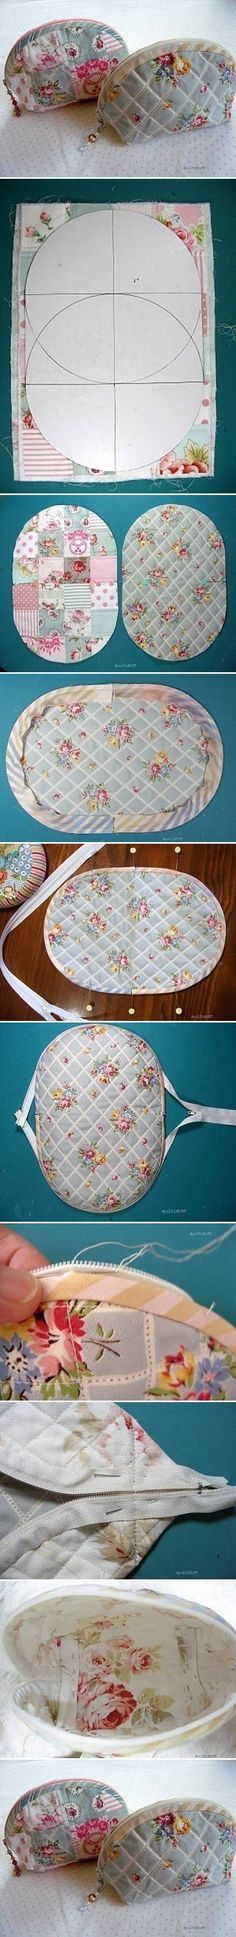 "<input type=""hidden"" value="""" data-frizzlyPostContainer="""" data-frizzlyPostUrl=""http://www.usefuldiy.com/diy-sew-makeup-bag/diy-sew-makeup-bag/"" data-frizzlyPostTitle=""DIY Sew Makeup Bag"" data-frizzlyHoverContainer=""""><p>>>> Craft Tutorials More Free Instructions Free Tutorials More Craft Tutorials</p>"